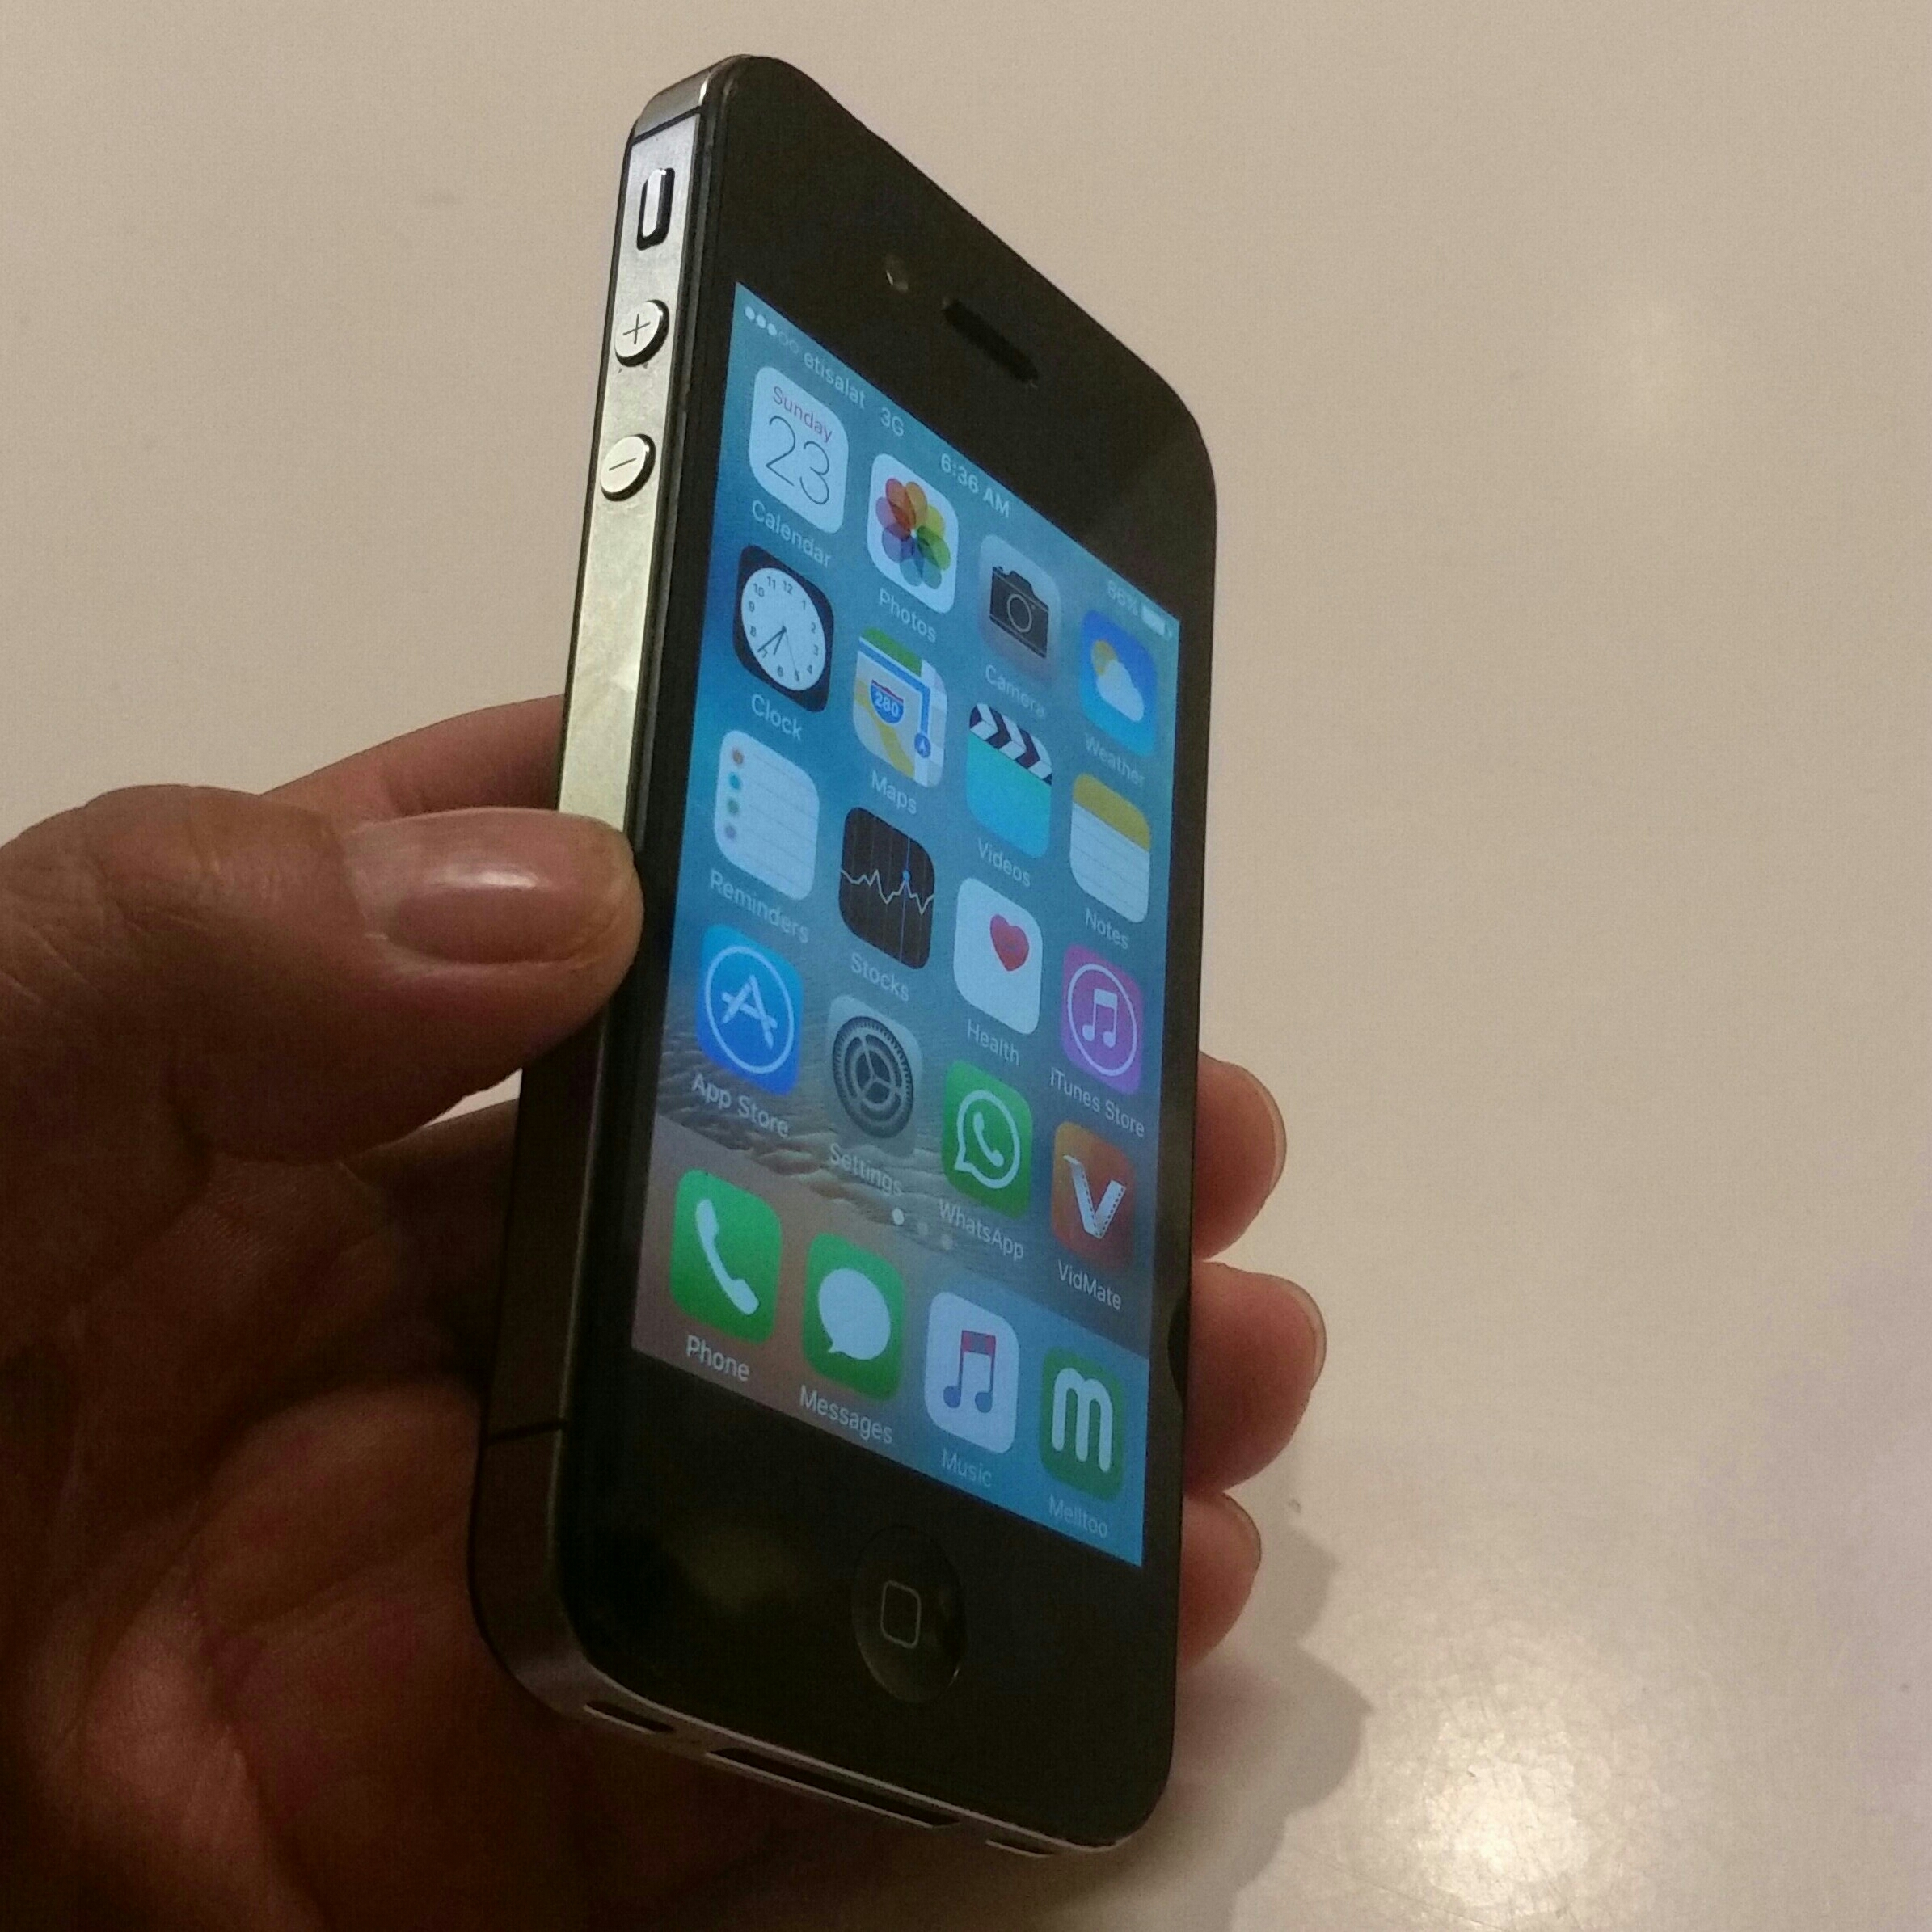 64 GB iphone 4S Black Edition With Charger, Earphone, Back Cover, Screen Protect Fixed.